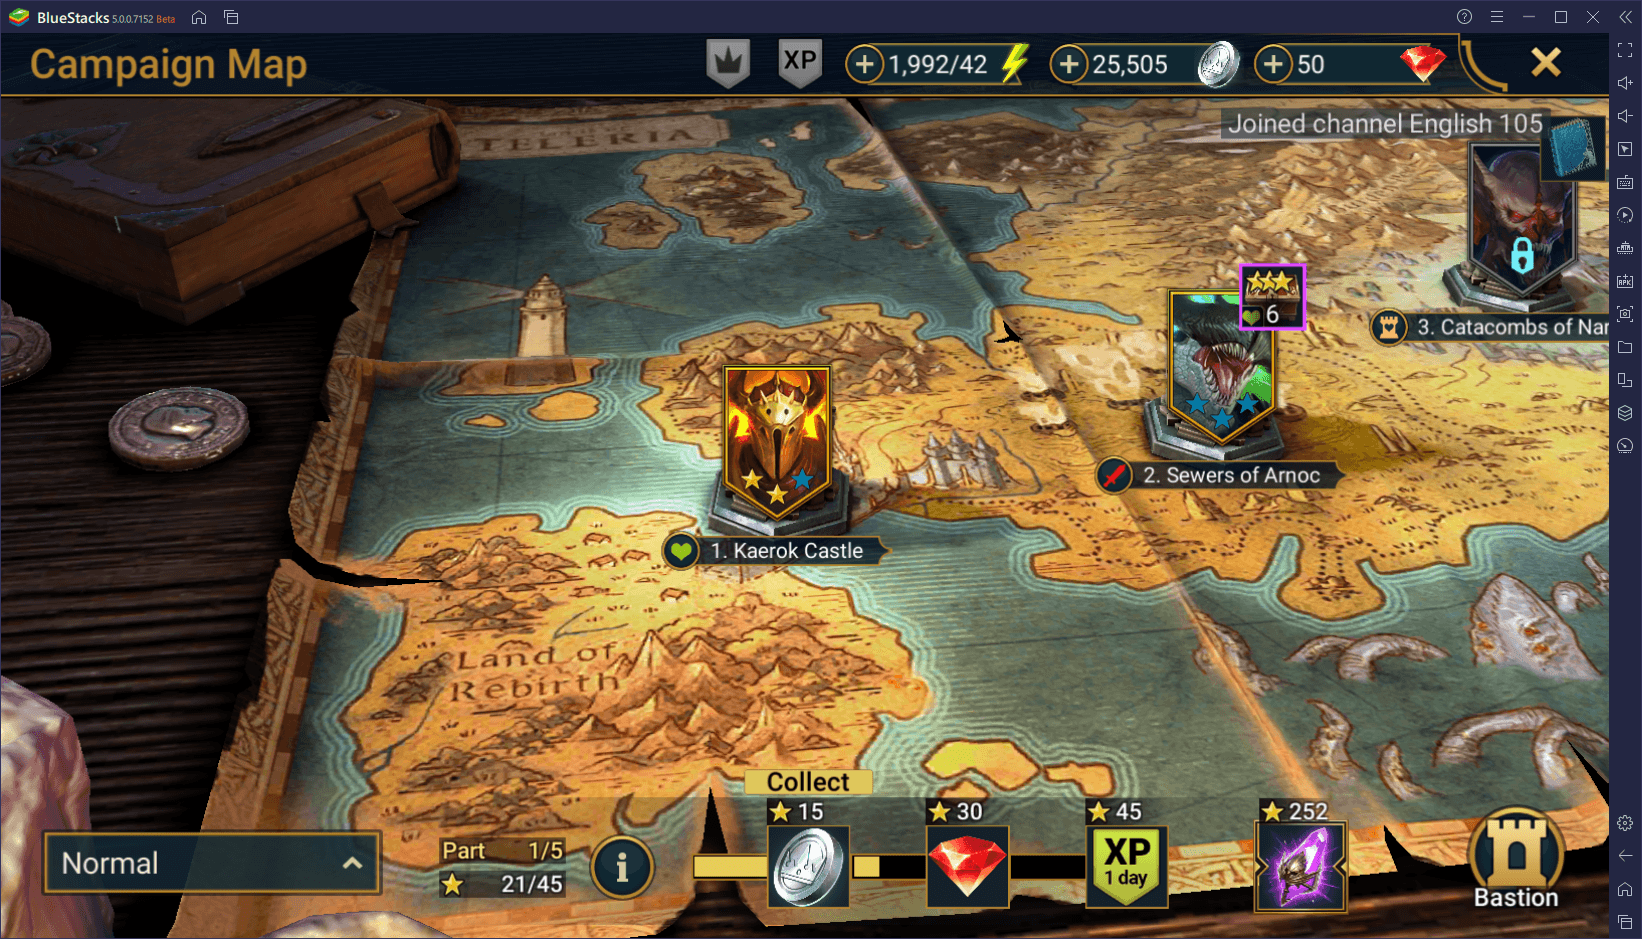 'Cold Brew Gaming' Recommends These BlueStacks 5 Tools for Enhancing Your RAID: Shadow Legends Gameplay